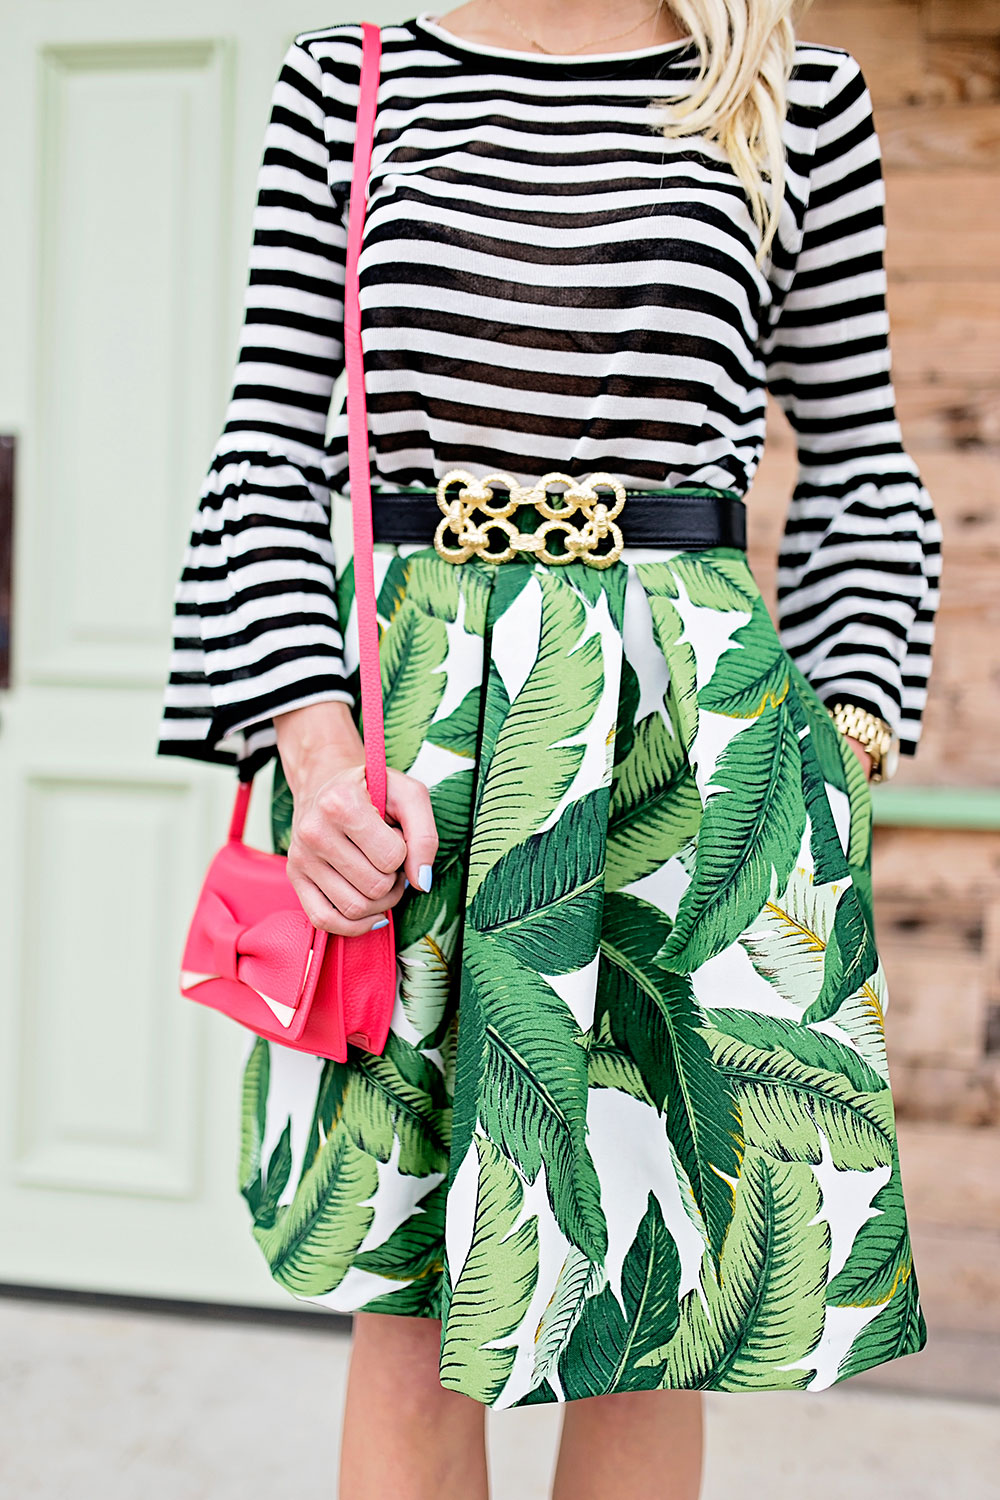 palm-midi-skirt-striped-top-outfit